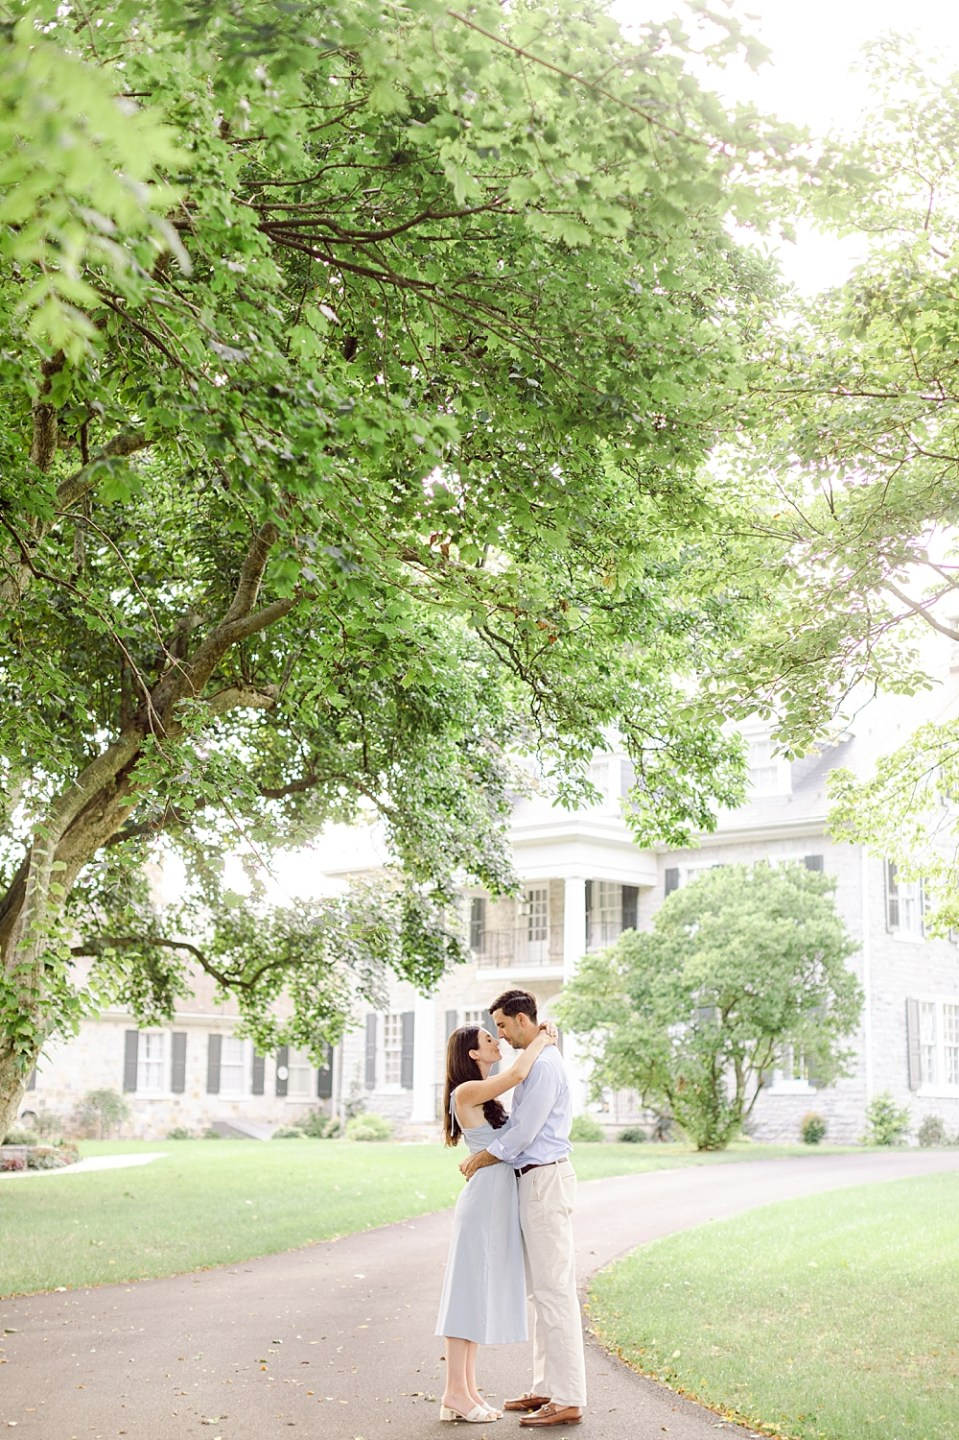 Beechdale Farms Engagement Session   lancaster wedding photographer sarah canning